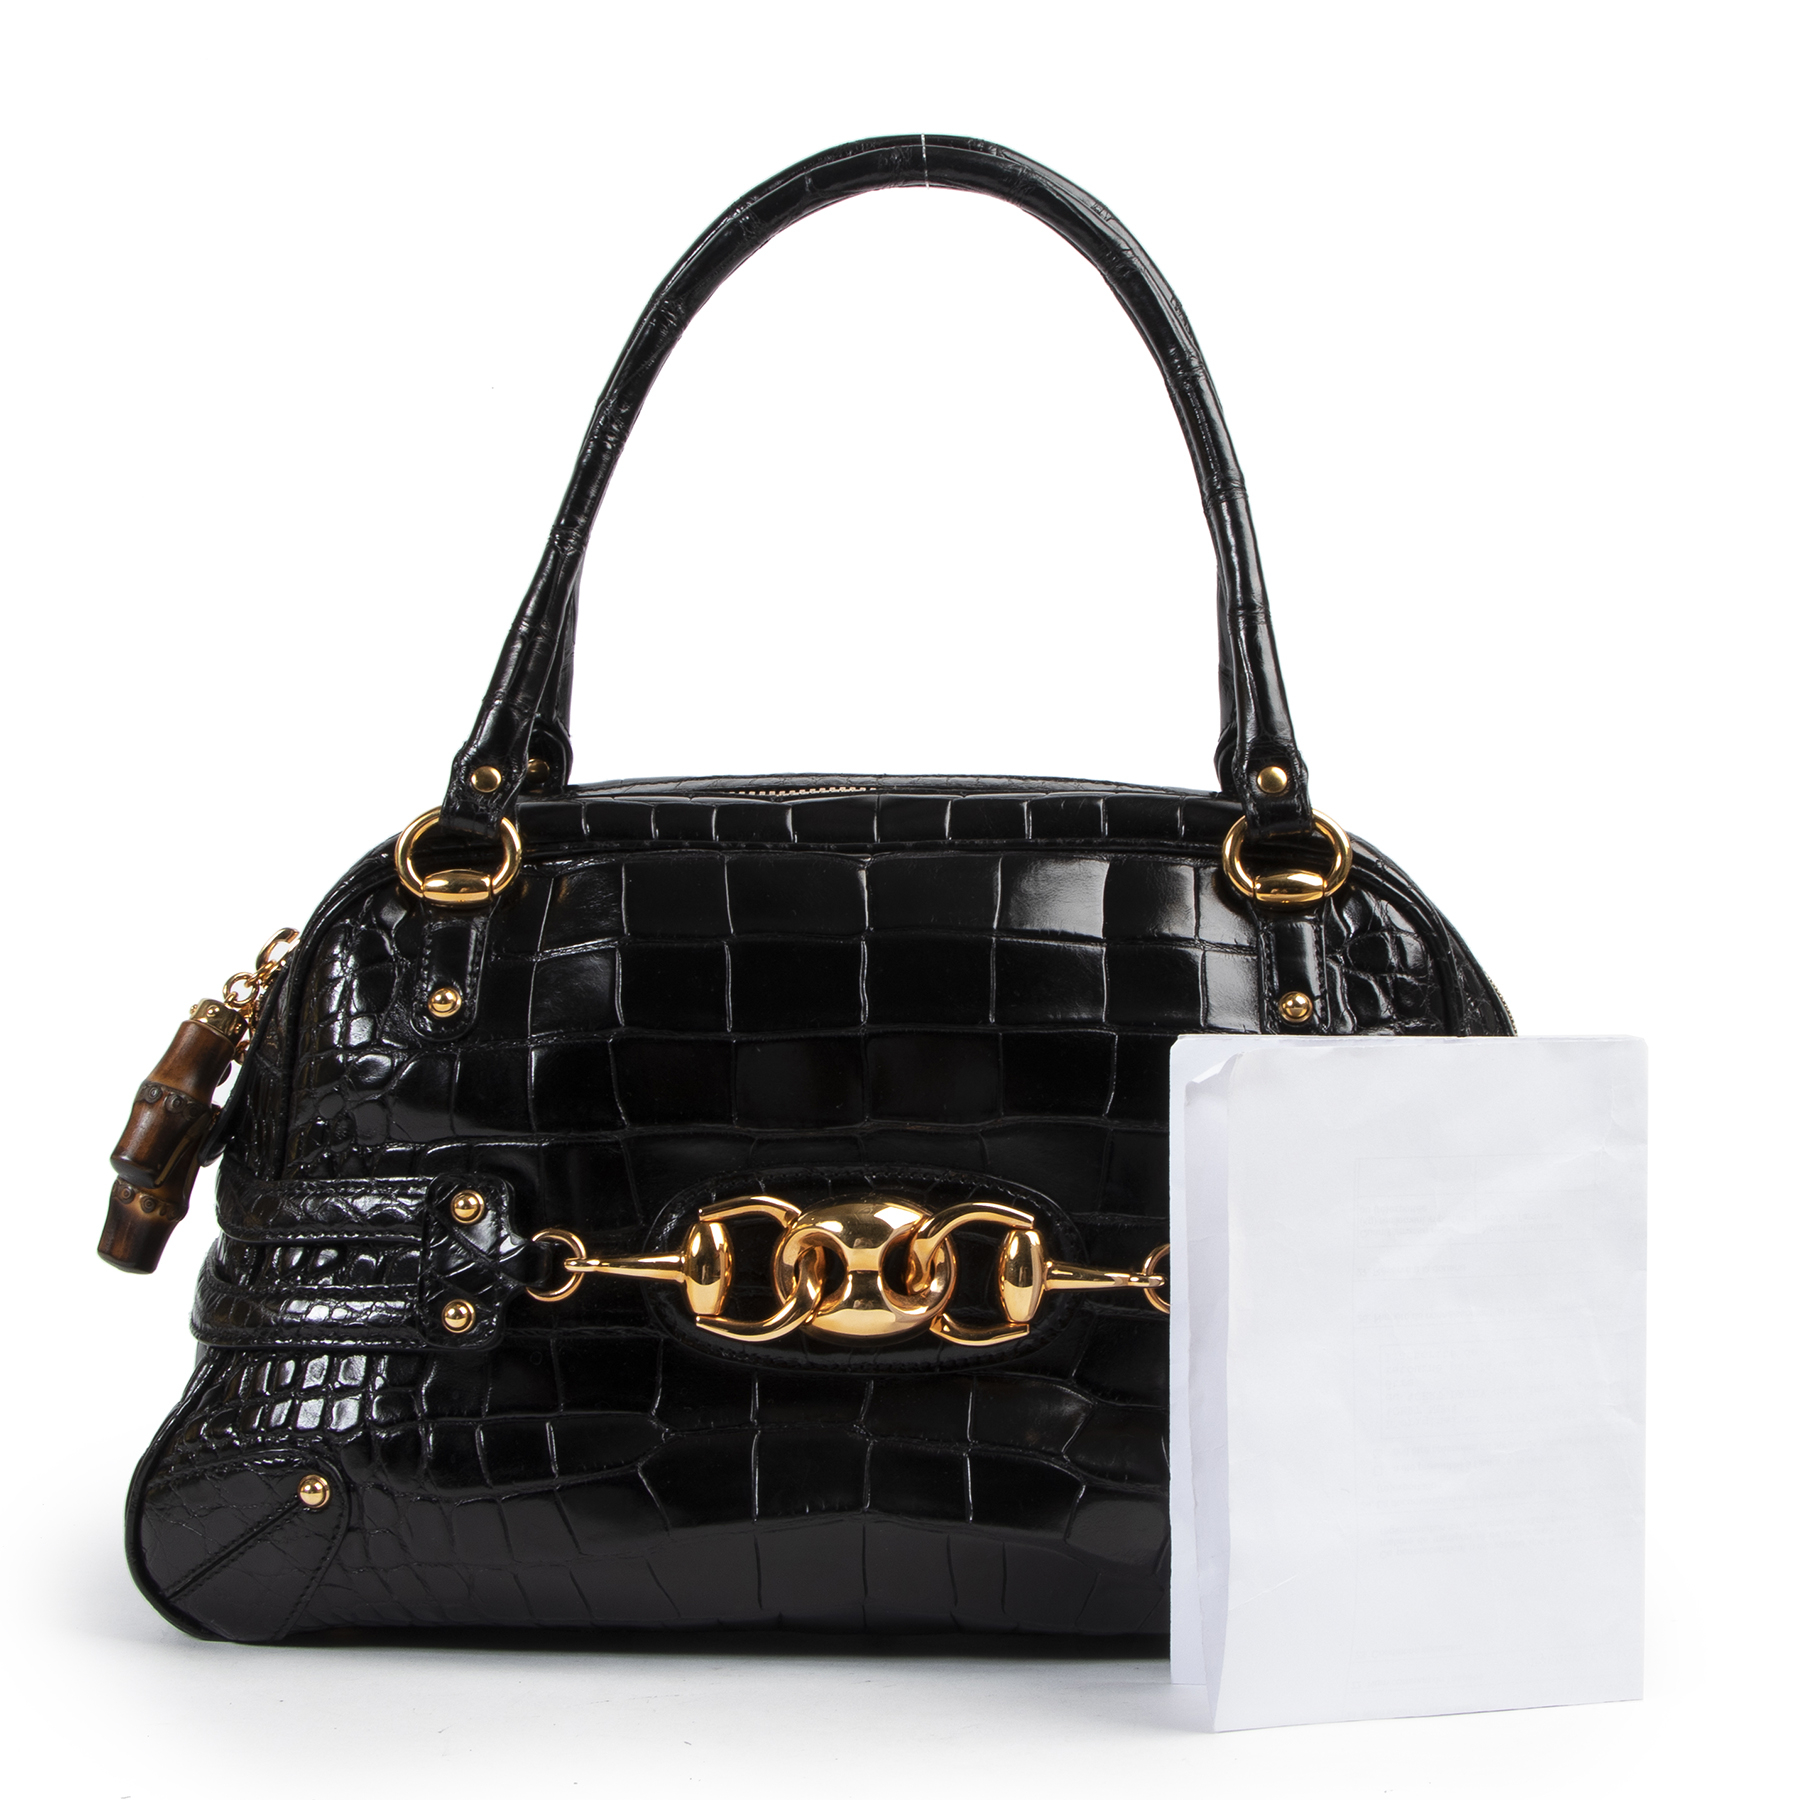 Bent u op zoek naar een authentieke designer Gucci Black Croco Wave Boston Bag